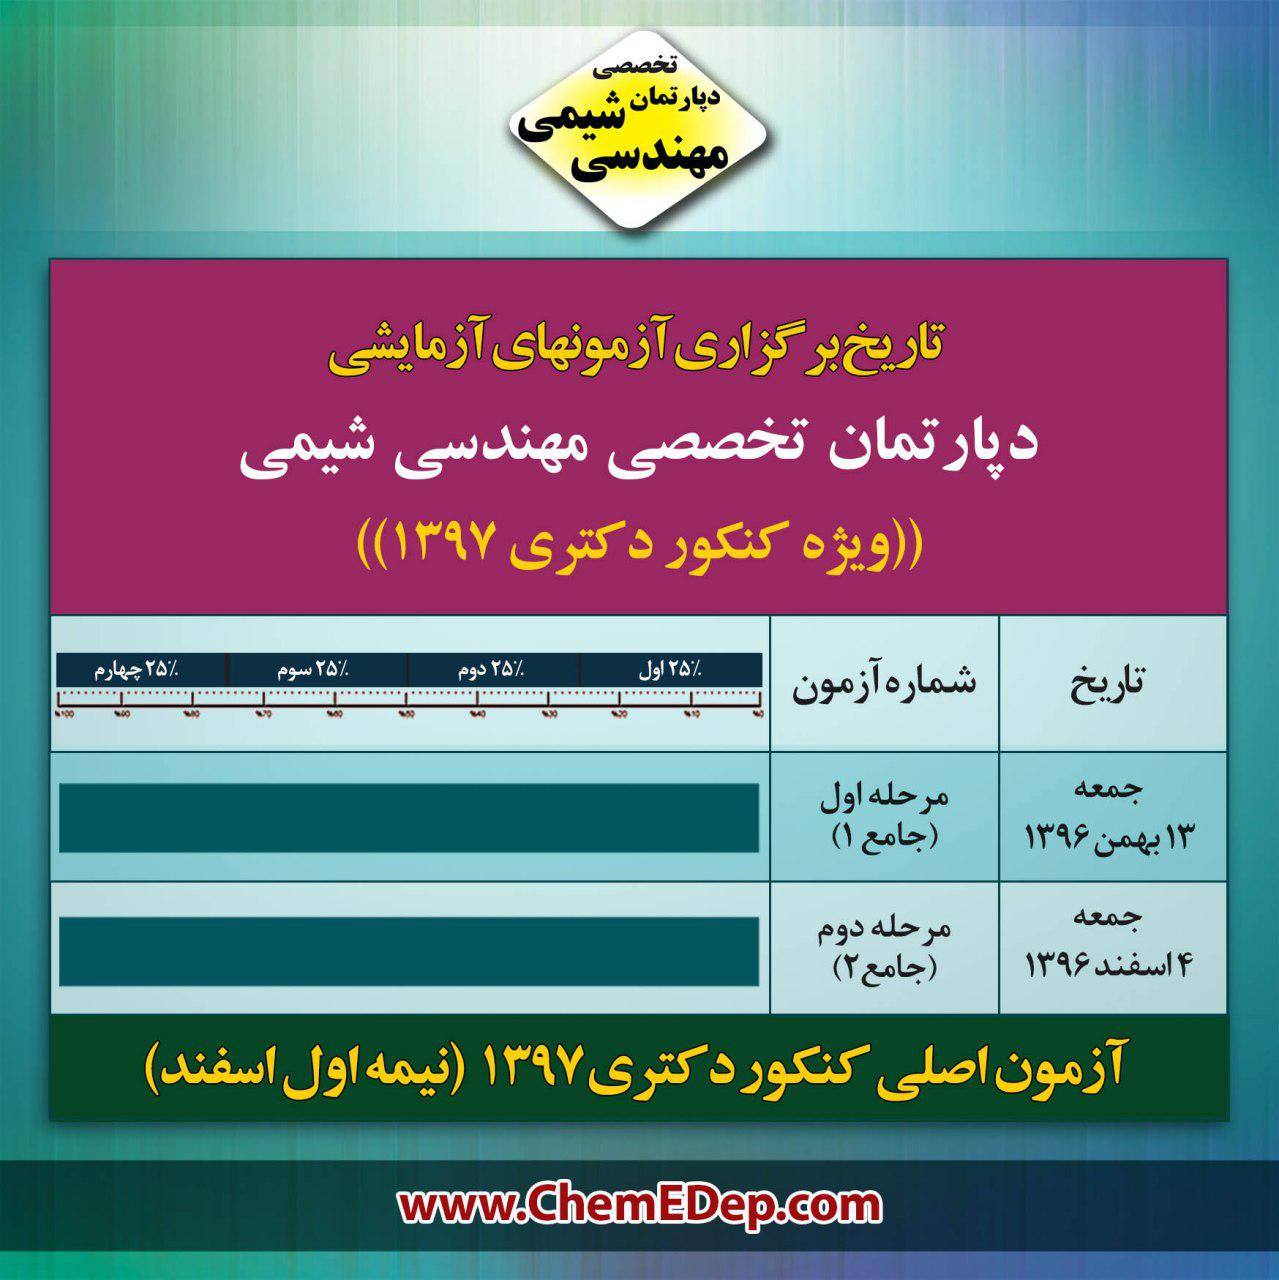 http://uupload.ir/files/0p9h_شیمی.jpg